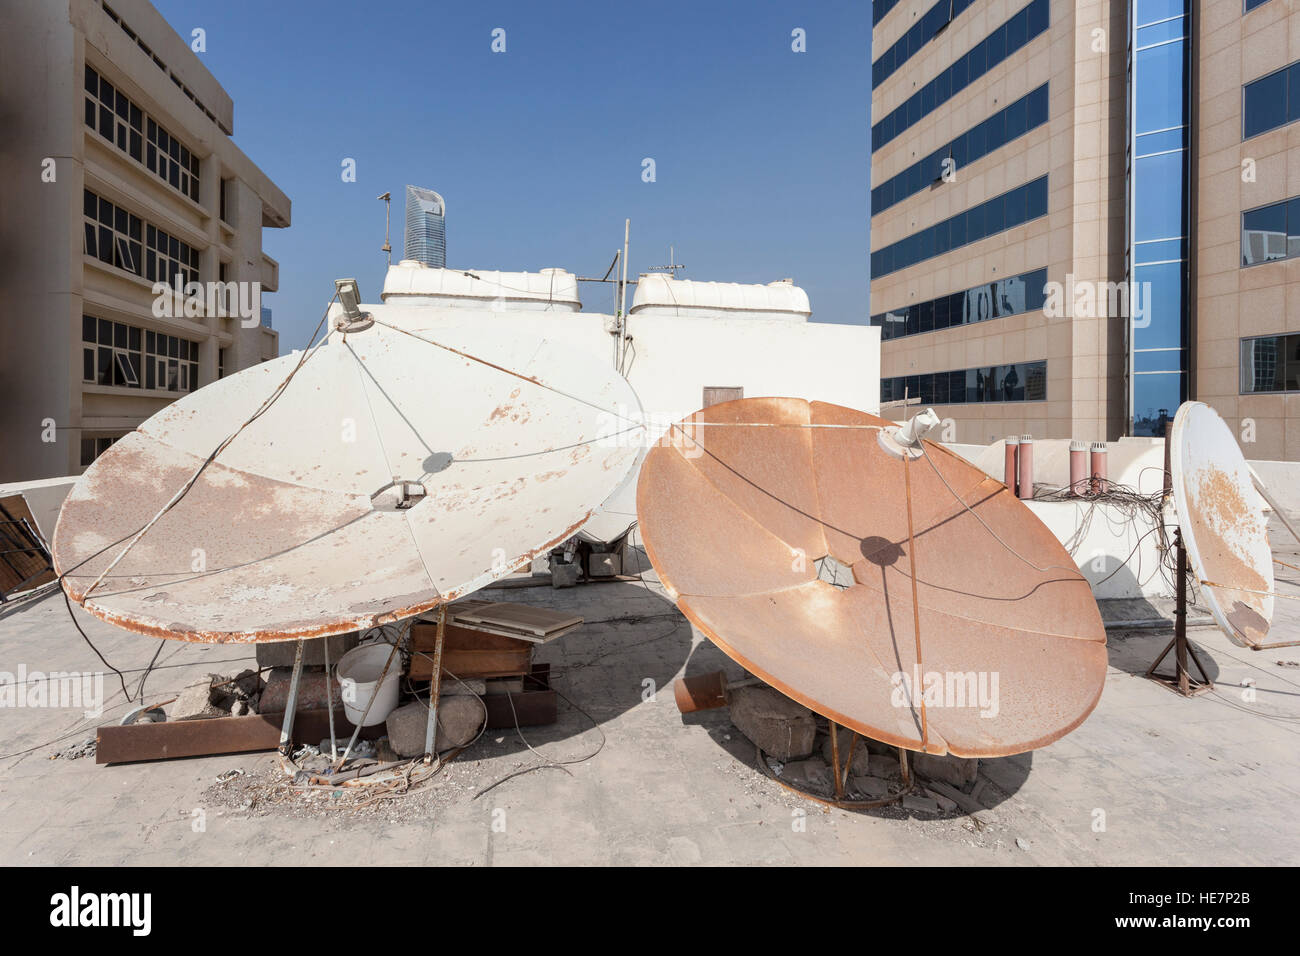 Satellite dish on the house roof - Stock Image